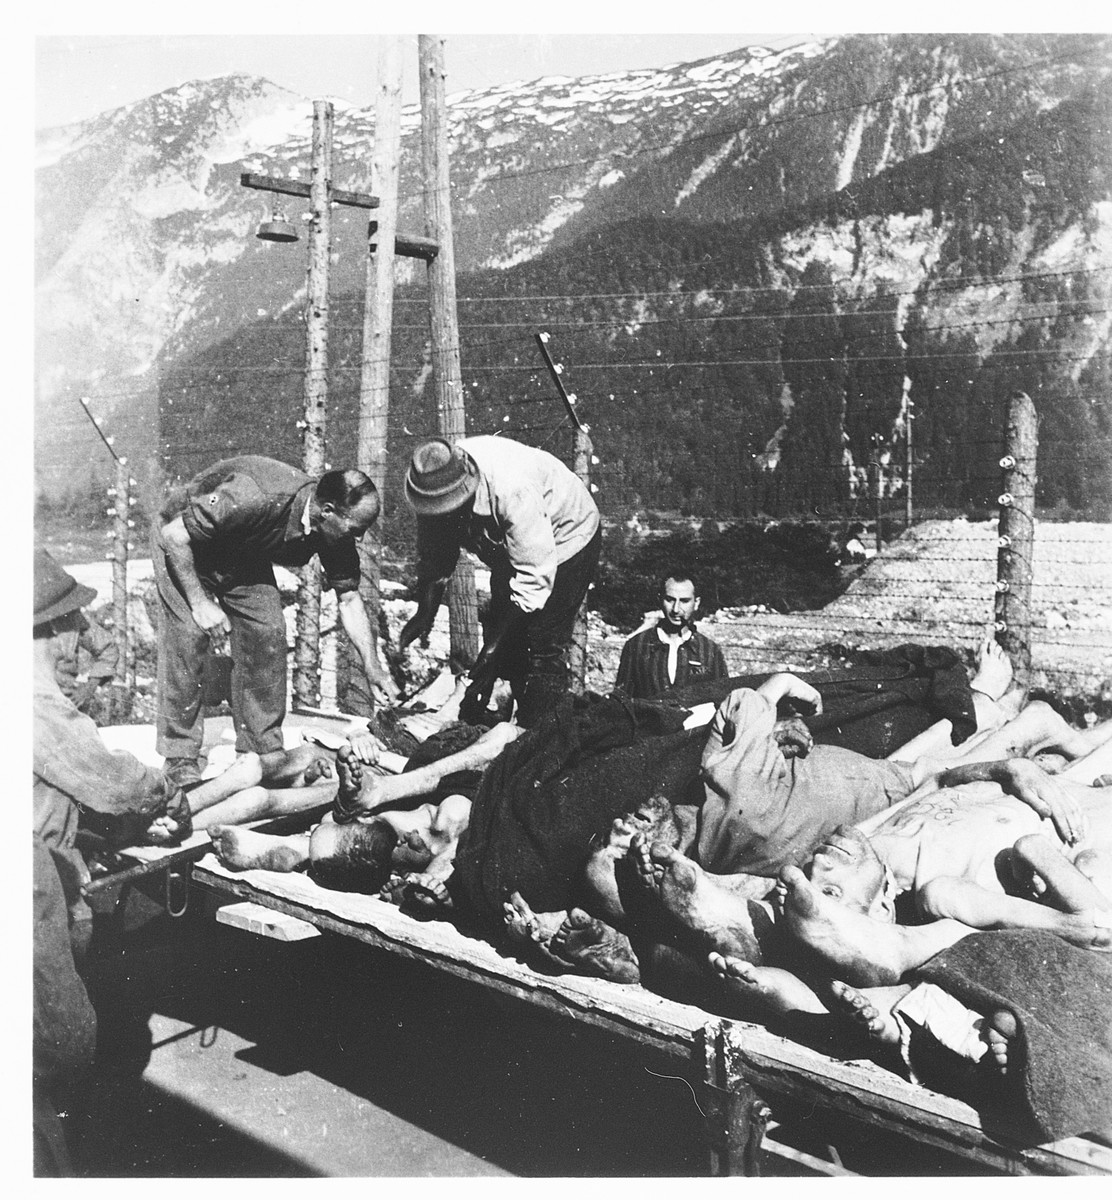 German civilians remove the bodies of former prisoners at the Ebensee concentration camp.